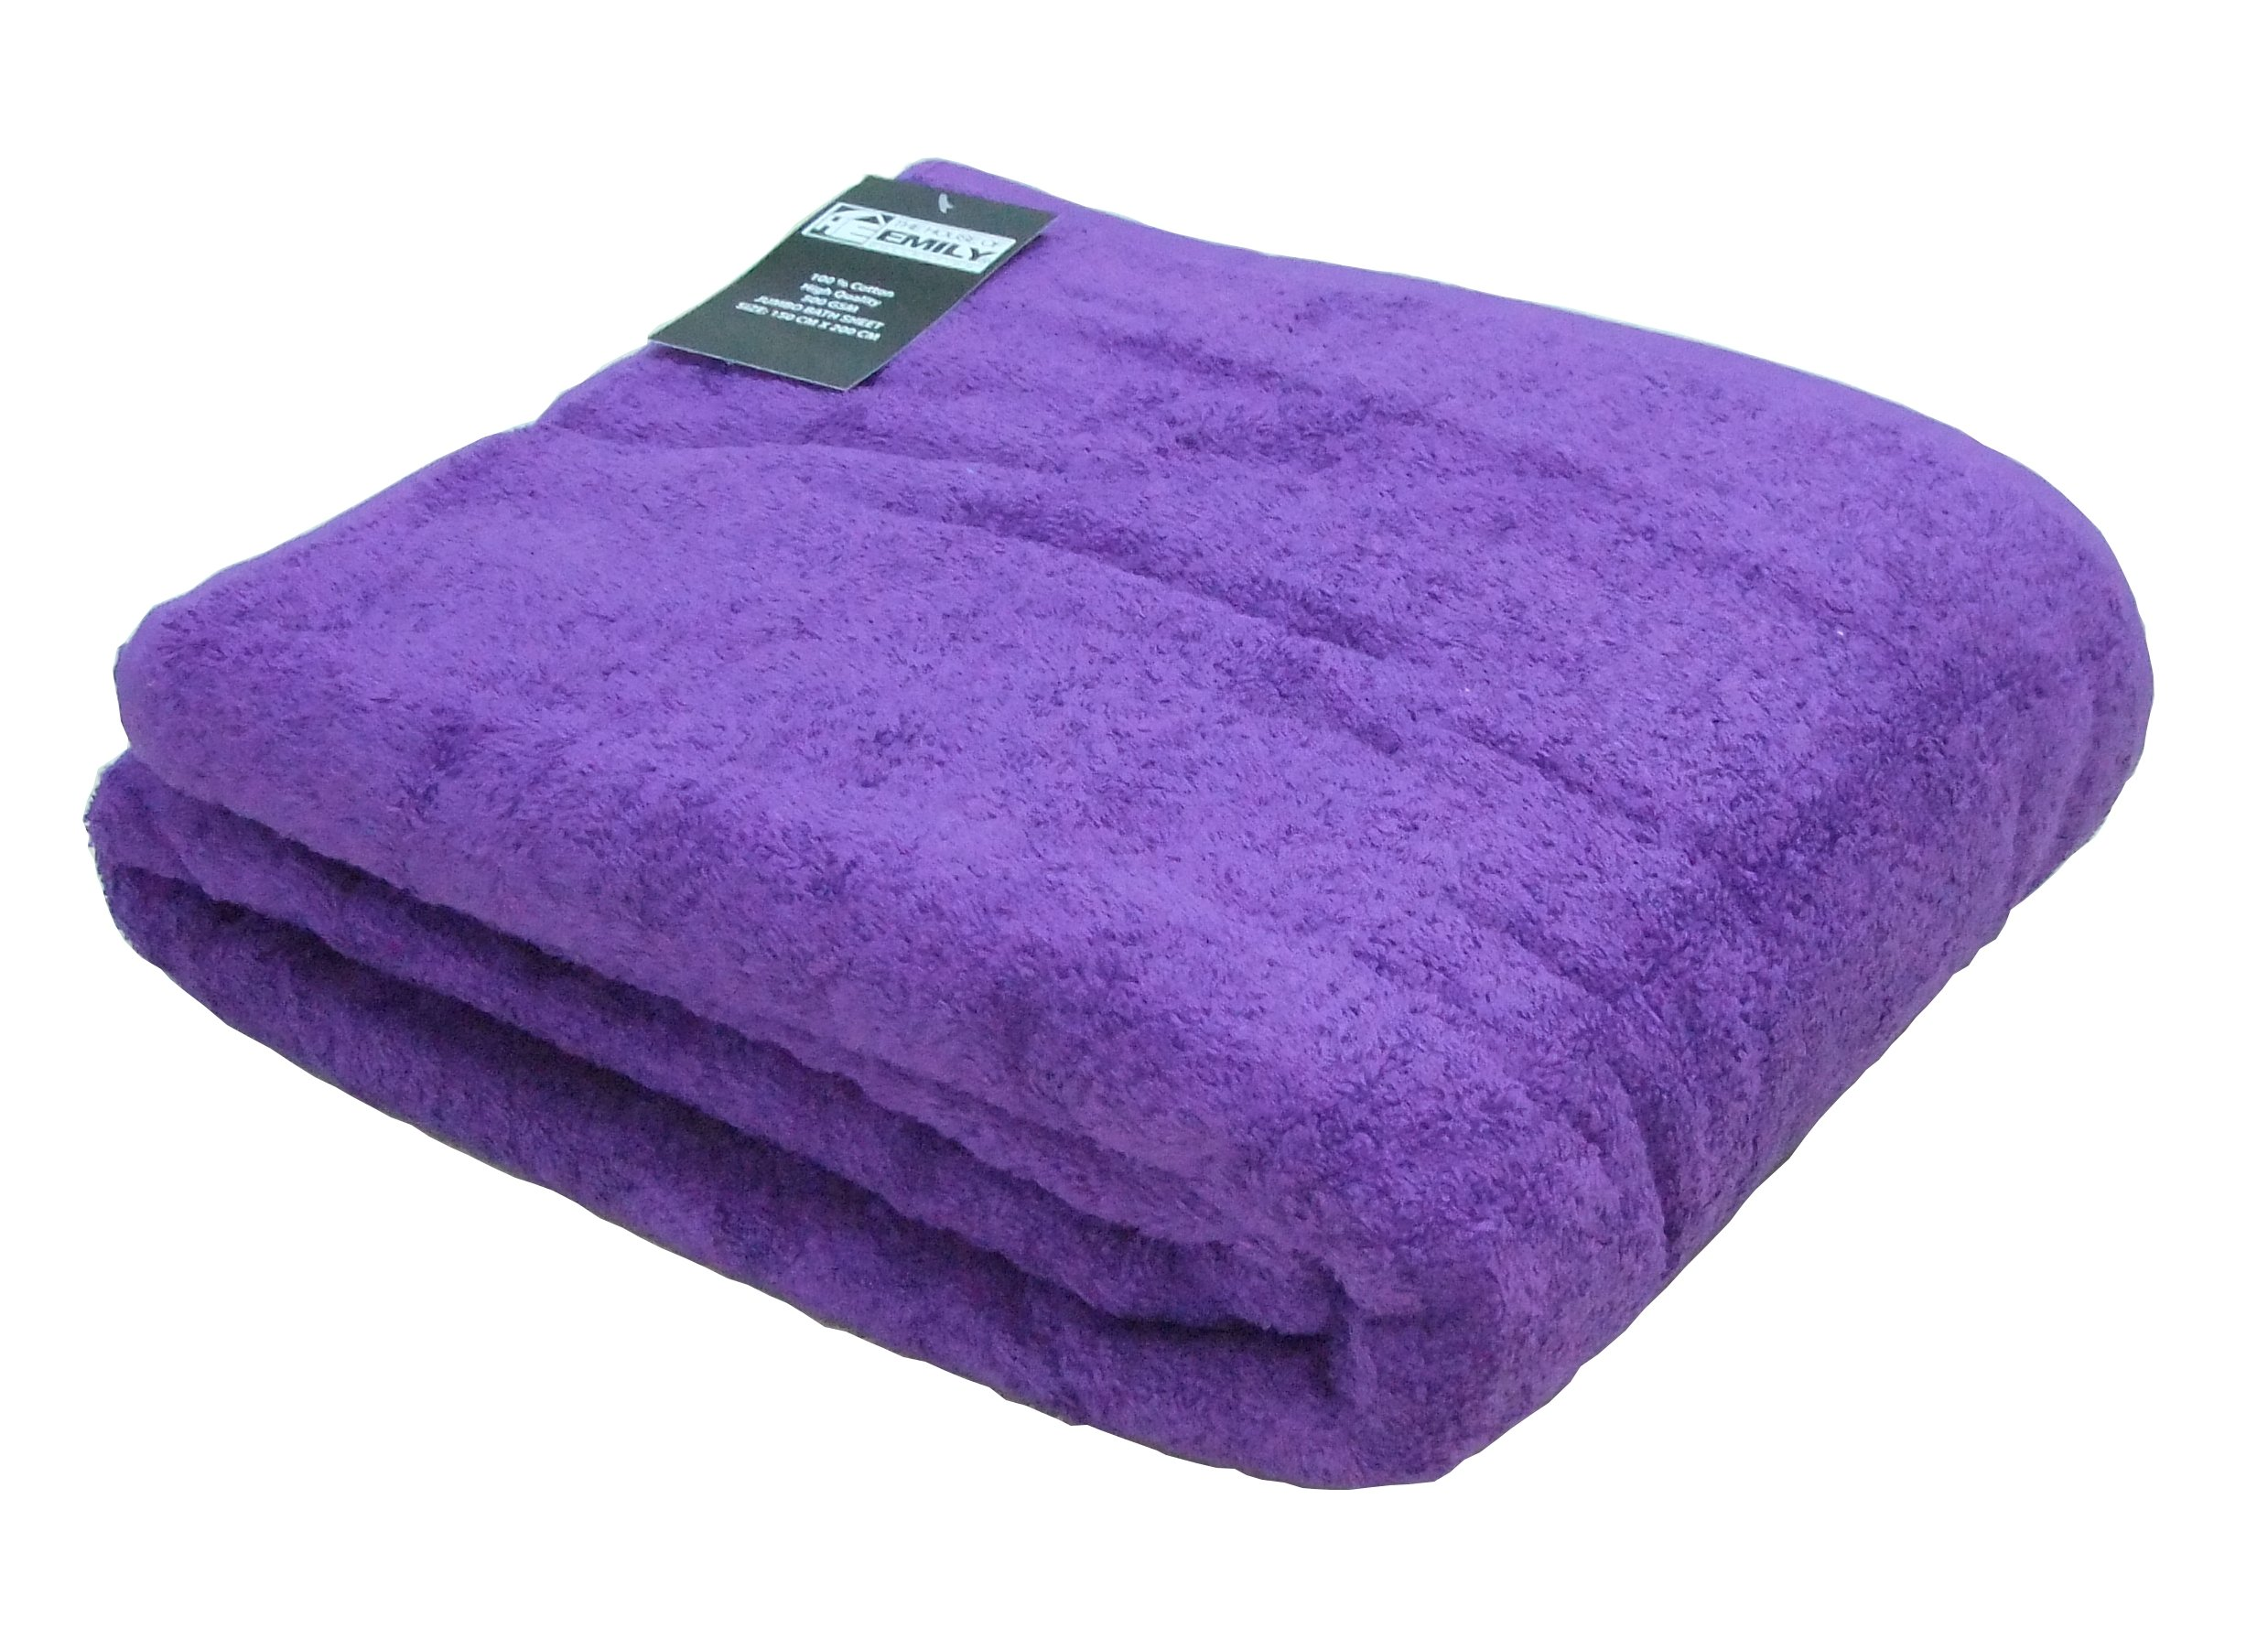 The House Of Emily Massive/Huge/Extra Large 100% Turkish Cotton Bath Sheet/Beach Towel - 60 x 80 Inch - Royal Lilac